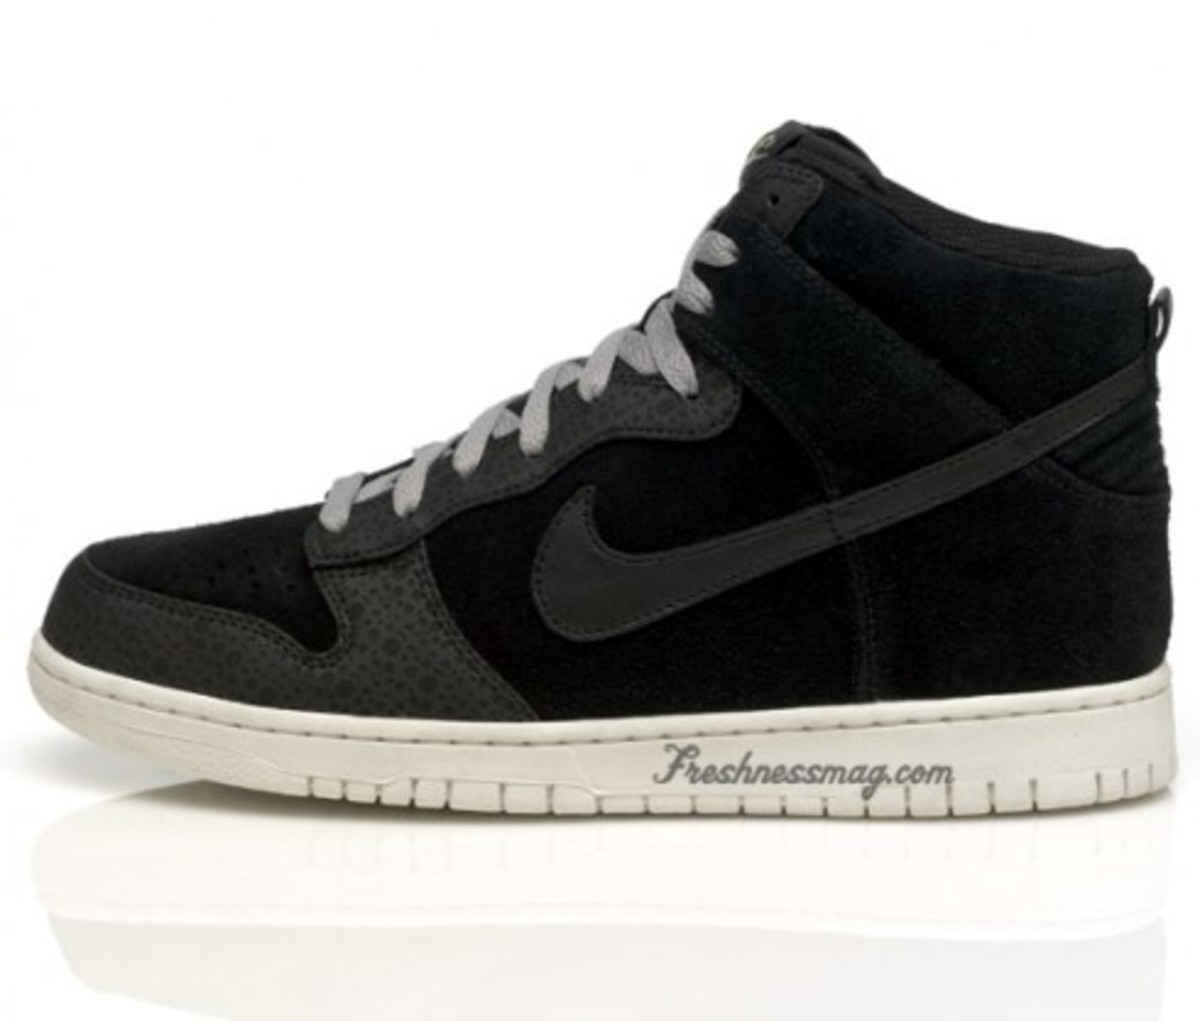 Nike Sportswear - Dunk Safari Pack - 1